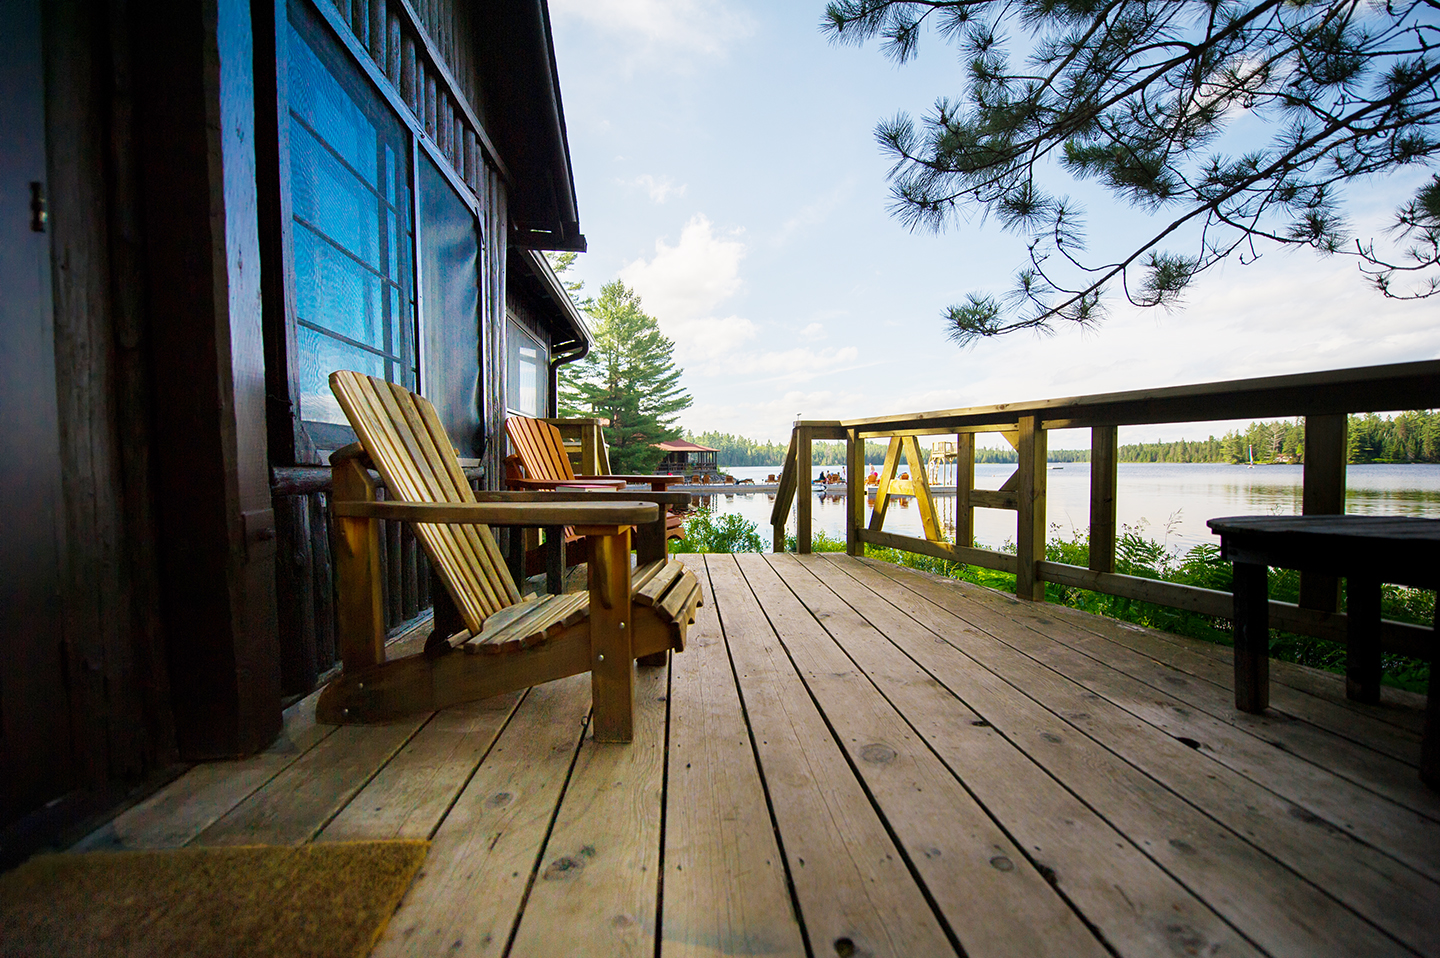 cabin-on-the-lake-962759632